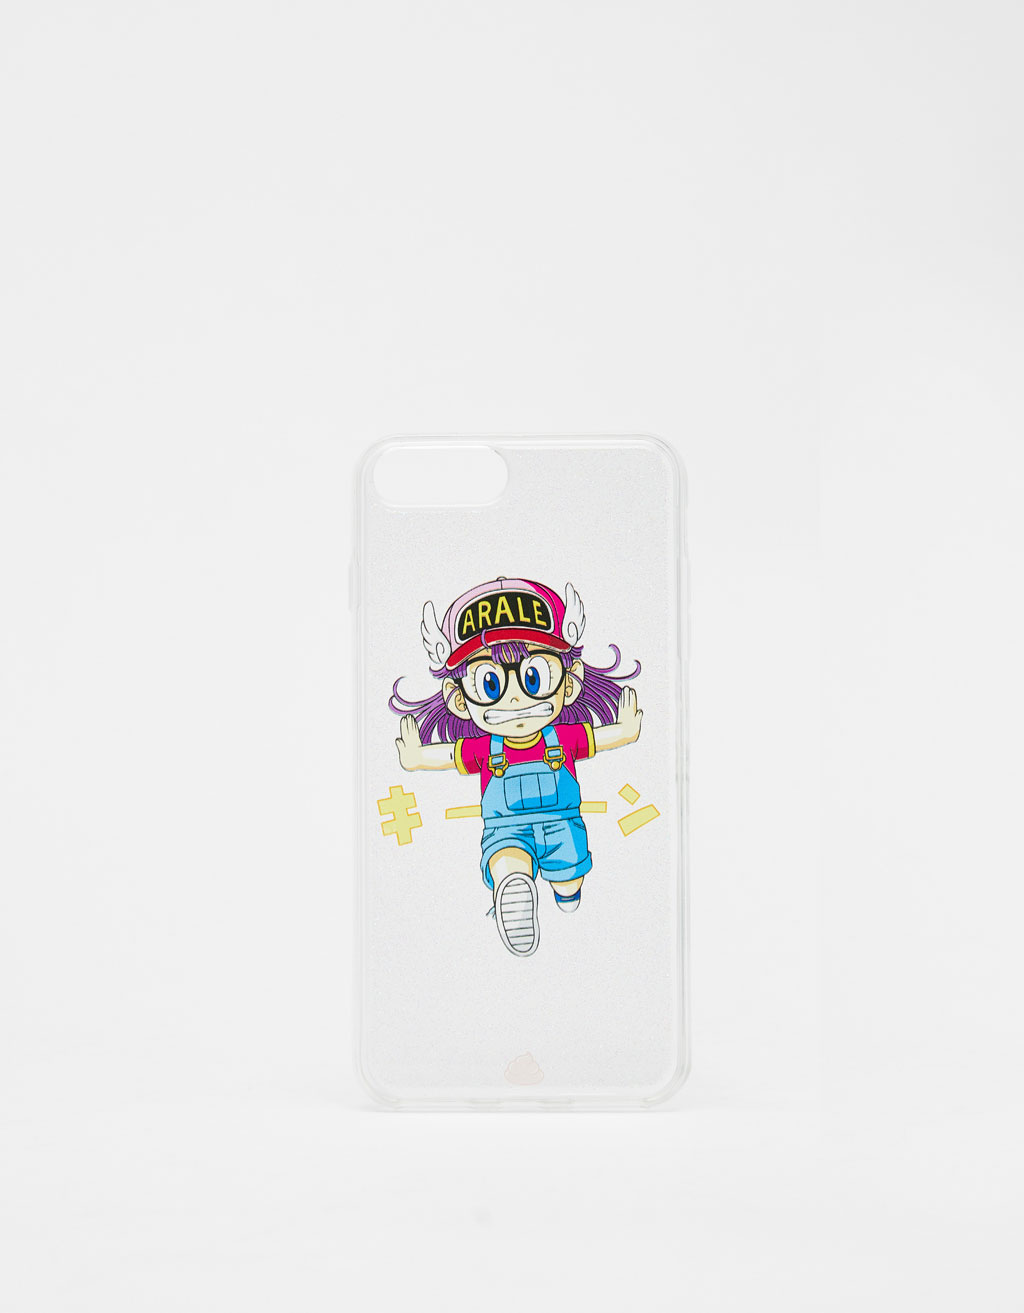 Carcasa transparente Arale iPhone 6 plus/7 plus/8 plus